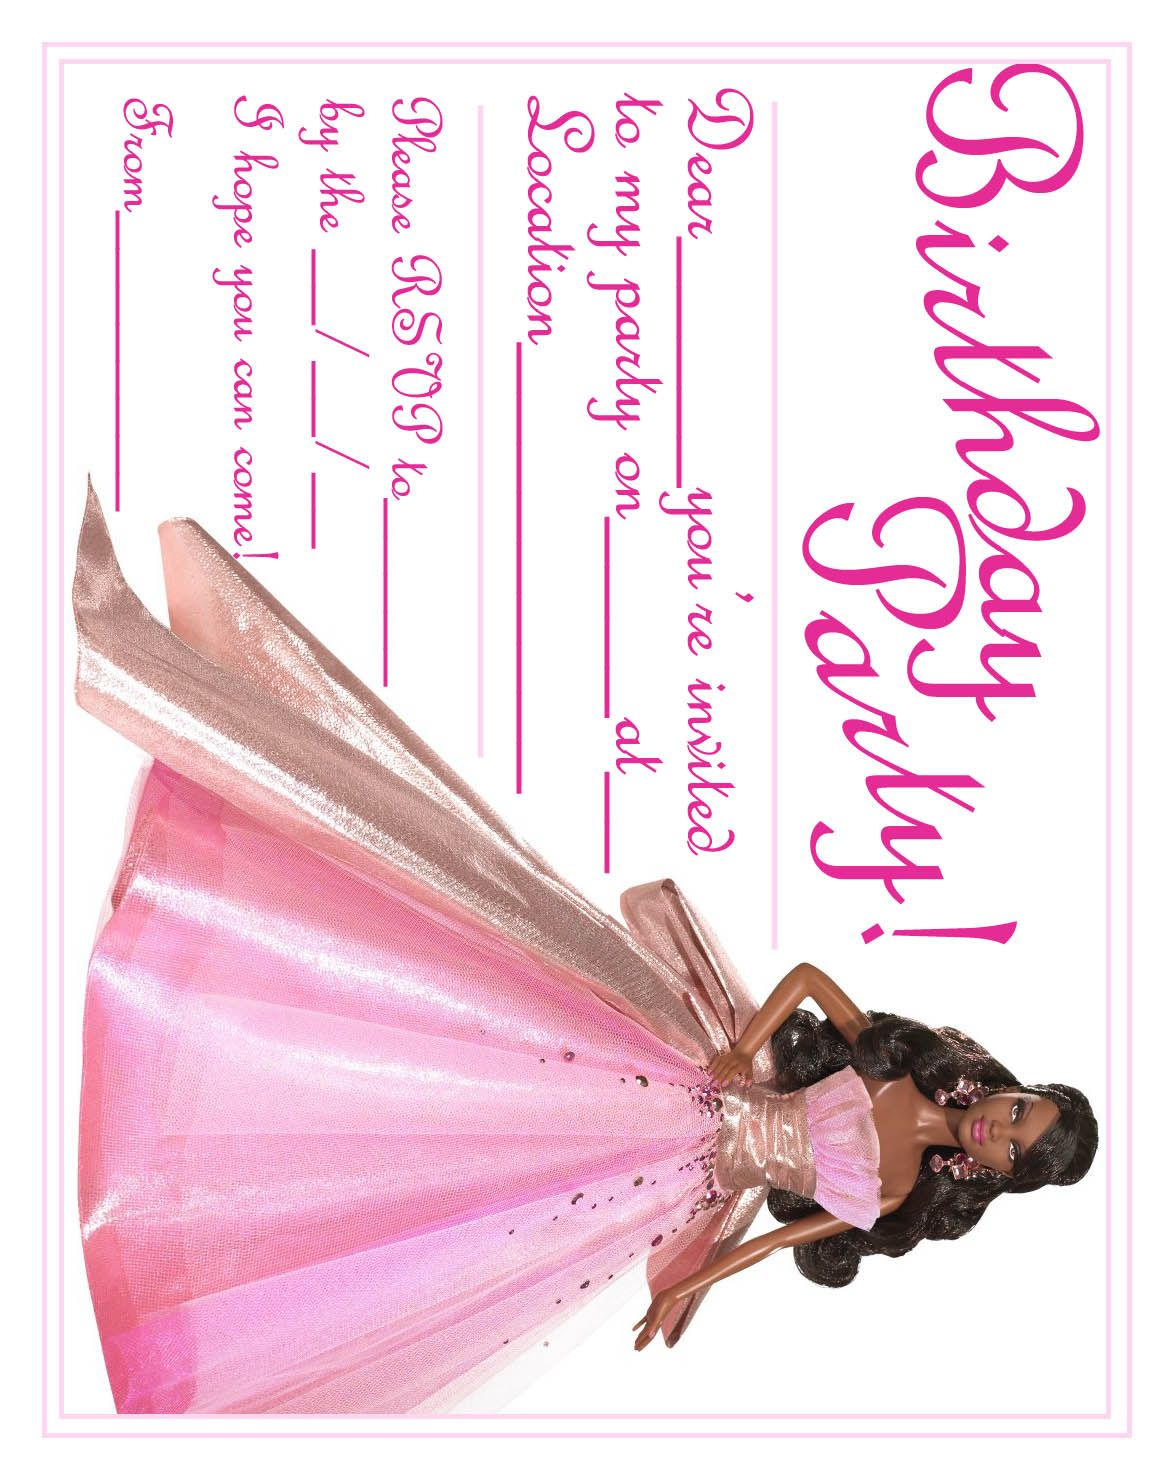 barbie birthday card printable ; 288507d0352b0c9b61ddfac0de93f735